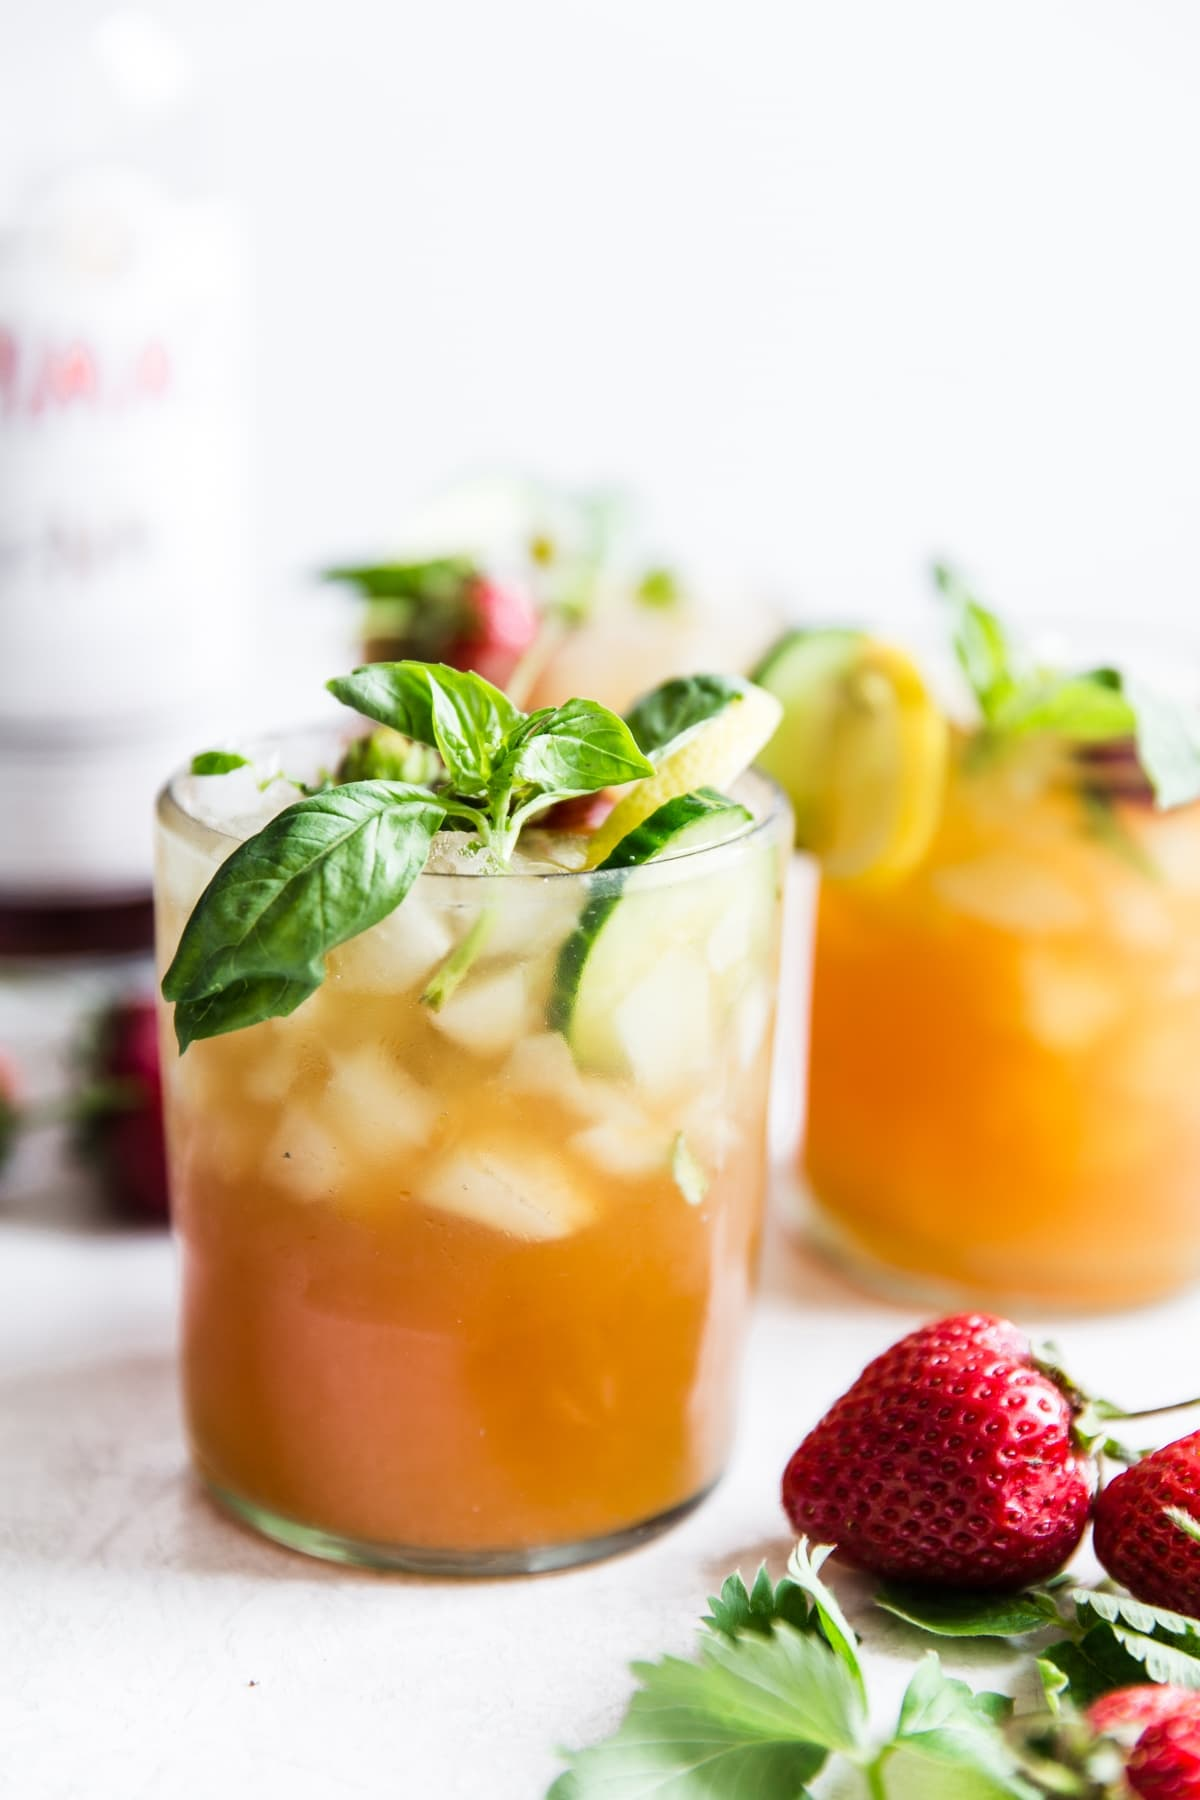 Pimm's Cup cocktail with strawberries, cucumber and basil